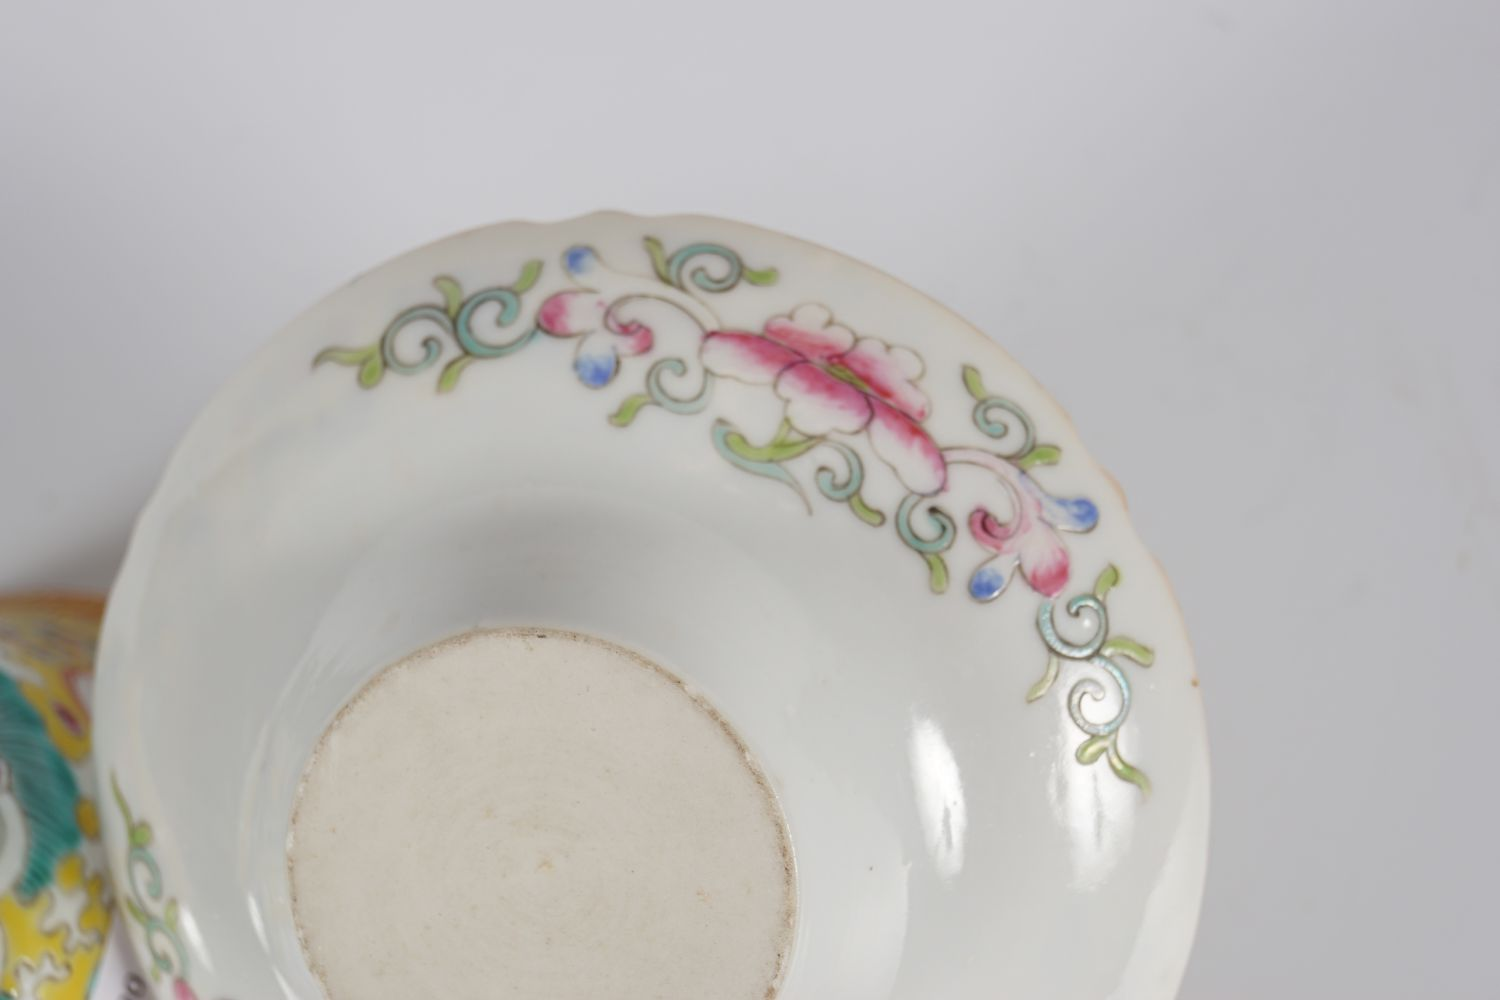 19TH-CENTURY CHINESE FAMILLE ROSE CUP AND SAUCER - Image 5 of 5